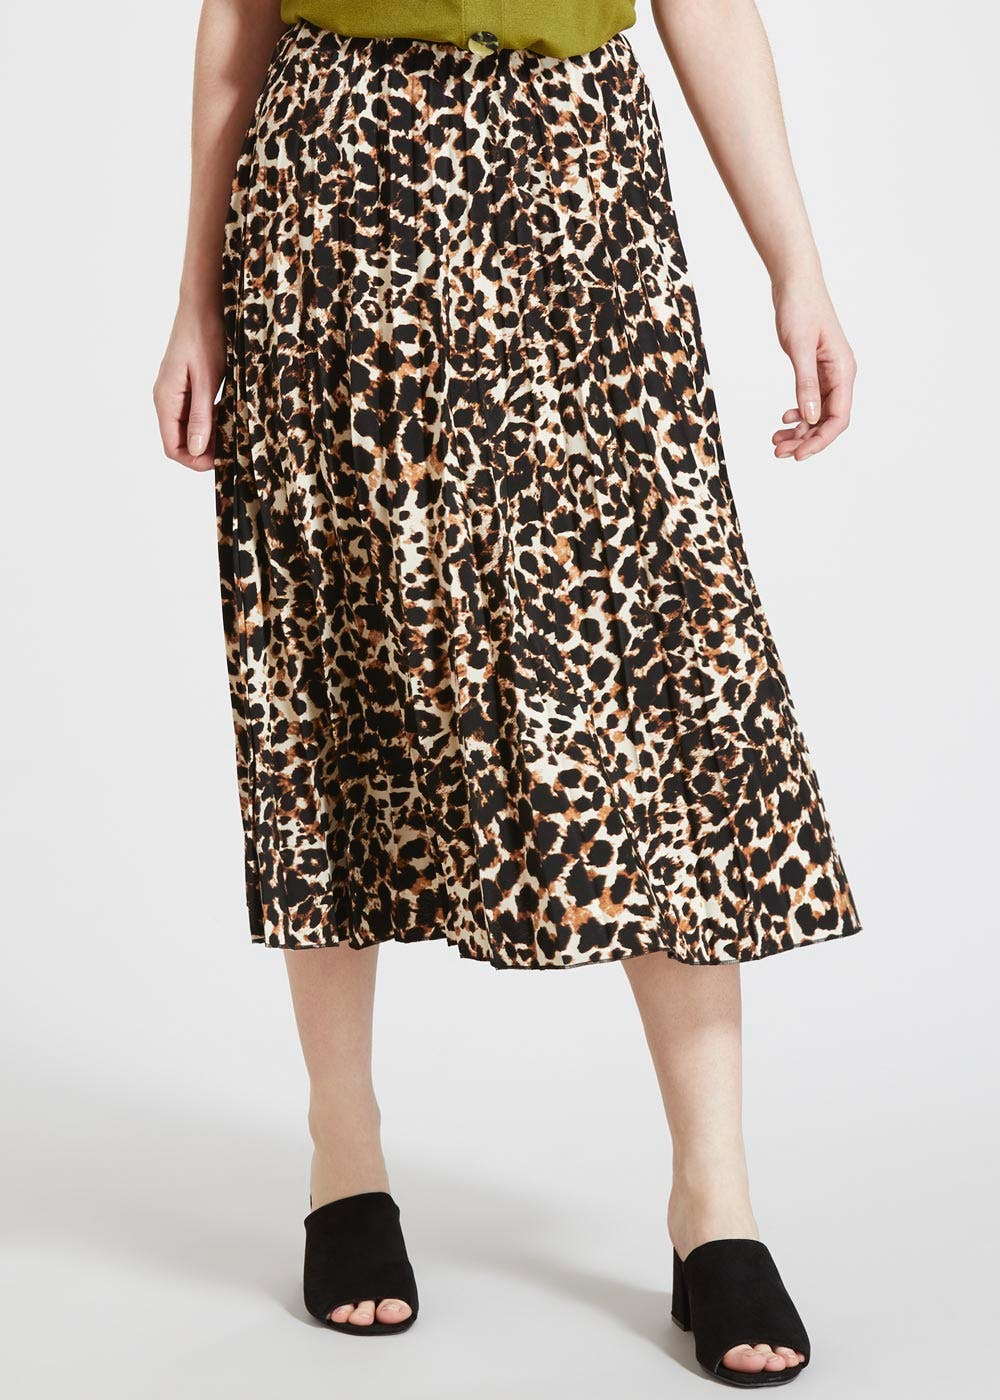 Clothing, Shoes & Accessories Women's Clothing Papaya Pleated Animal Print Skirt Size 14